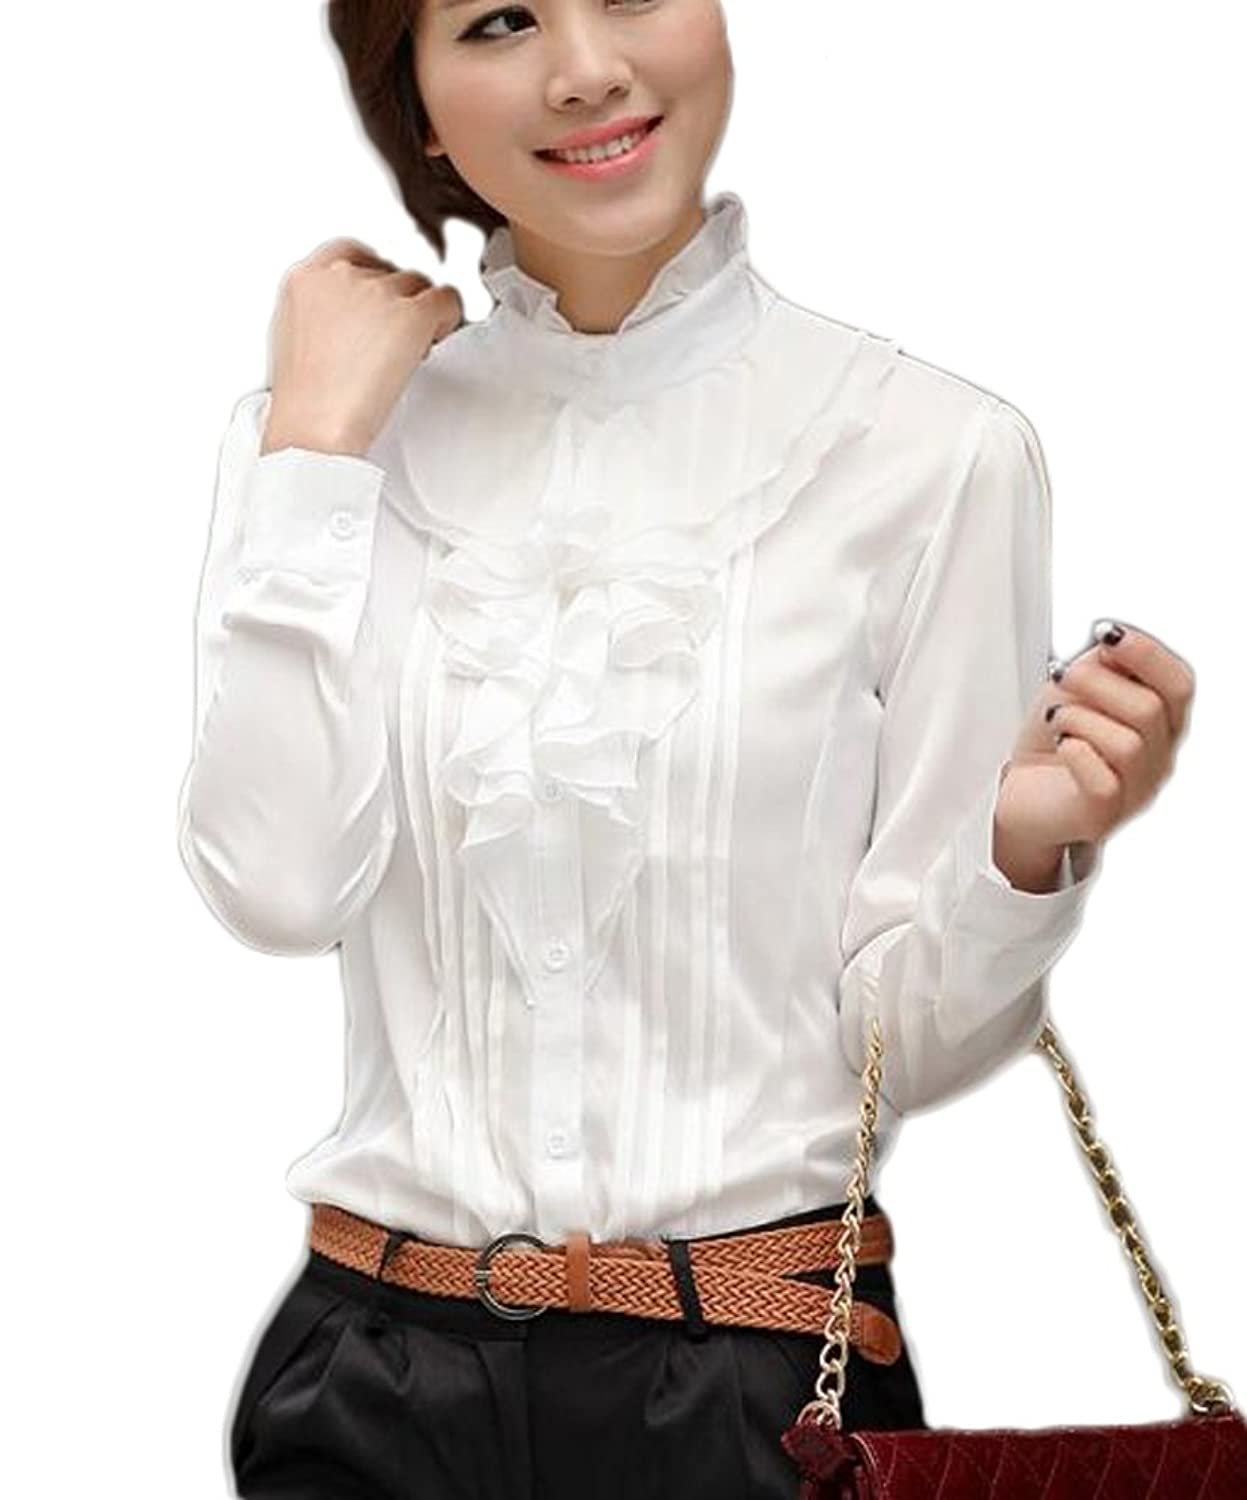 Victorian Blouses, Tops, Shirts, Vests Small Long Sleeve Lotus Ruffled Casual Shirt Blouse $18.67 AT vintagedancer.com